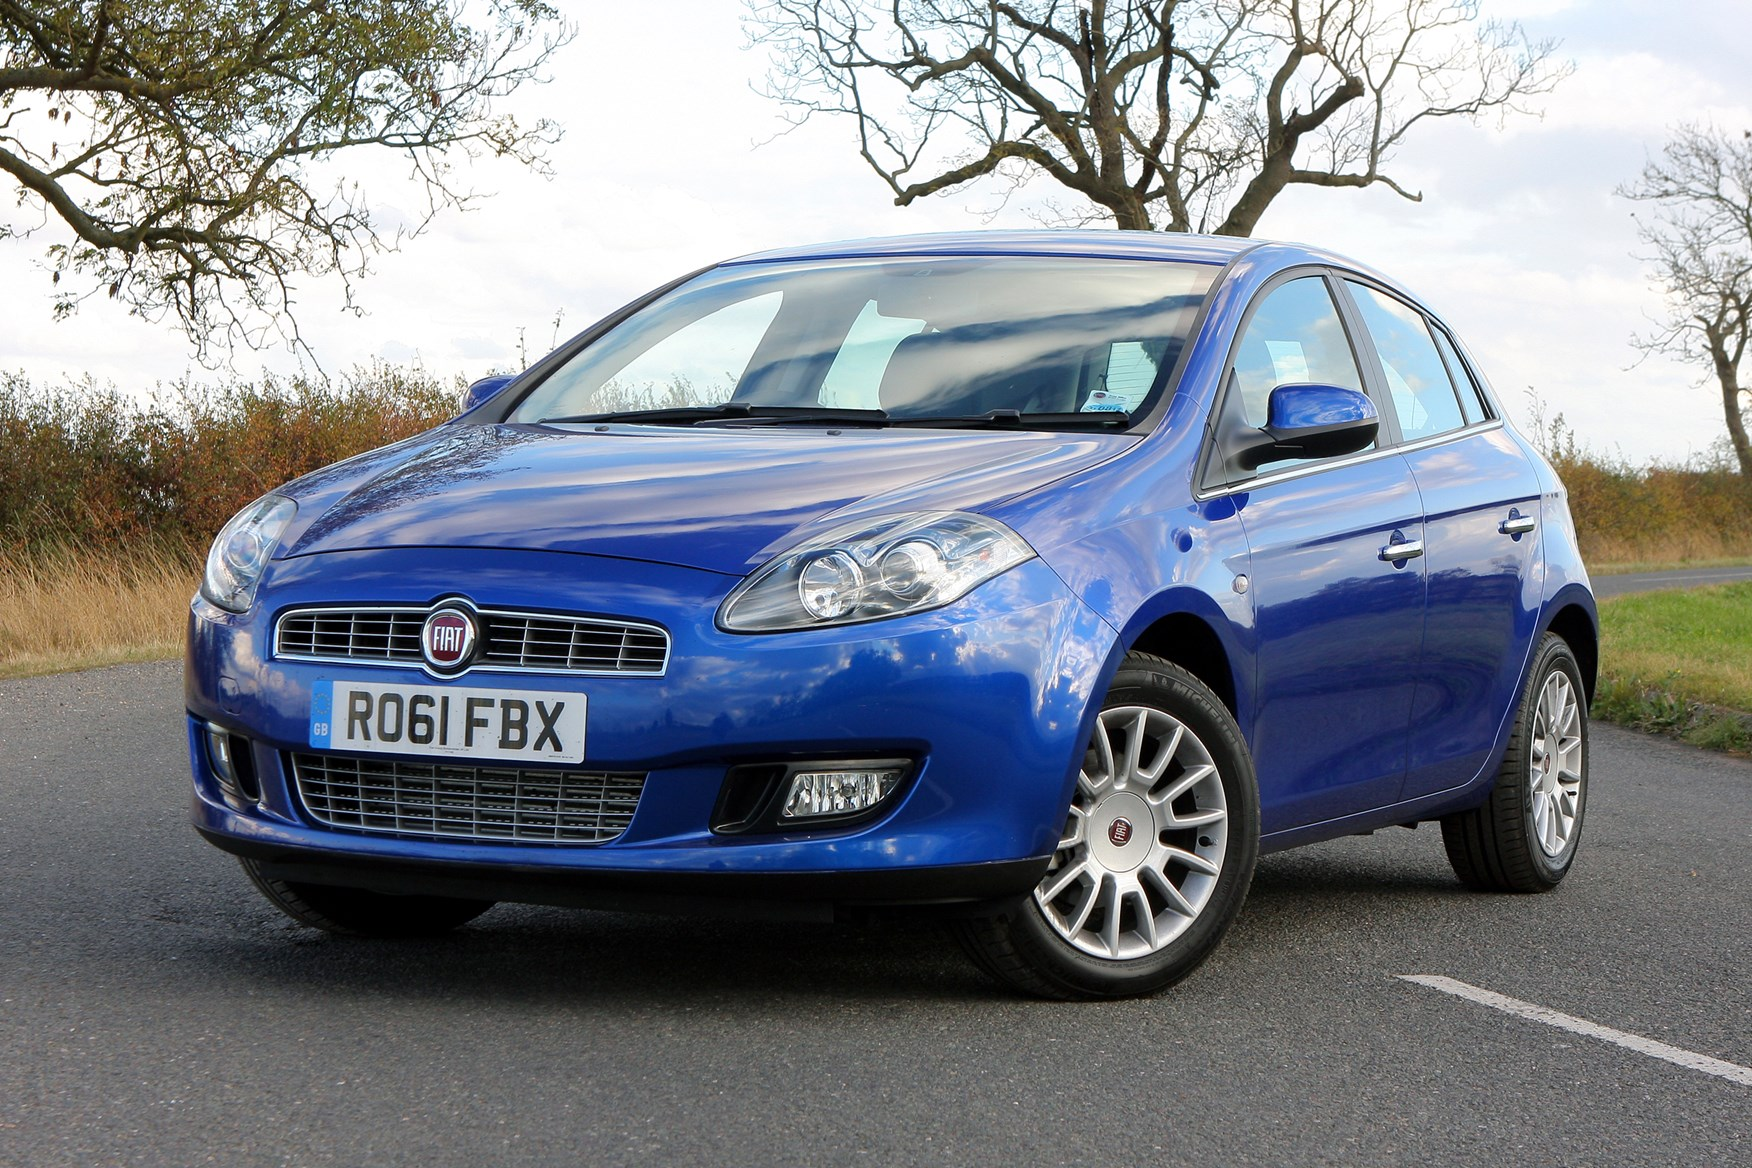 Used Fiat Bravo Hatchback 2007 2014 Review Parkers